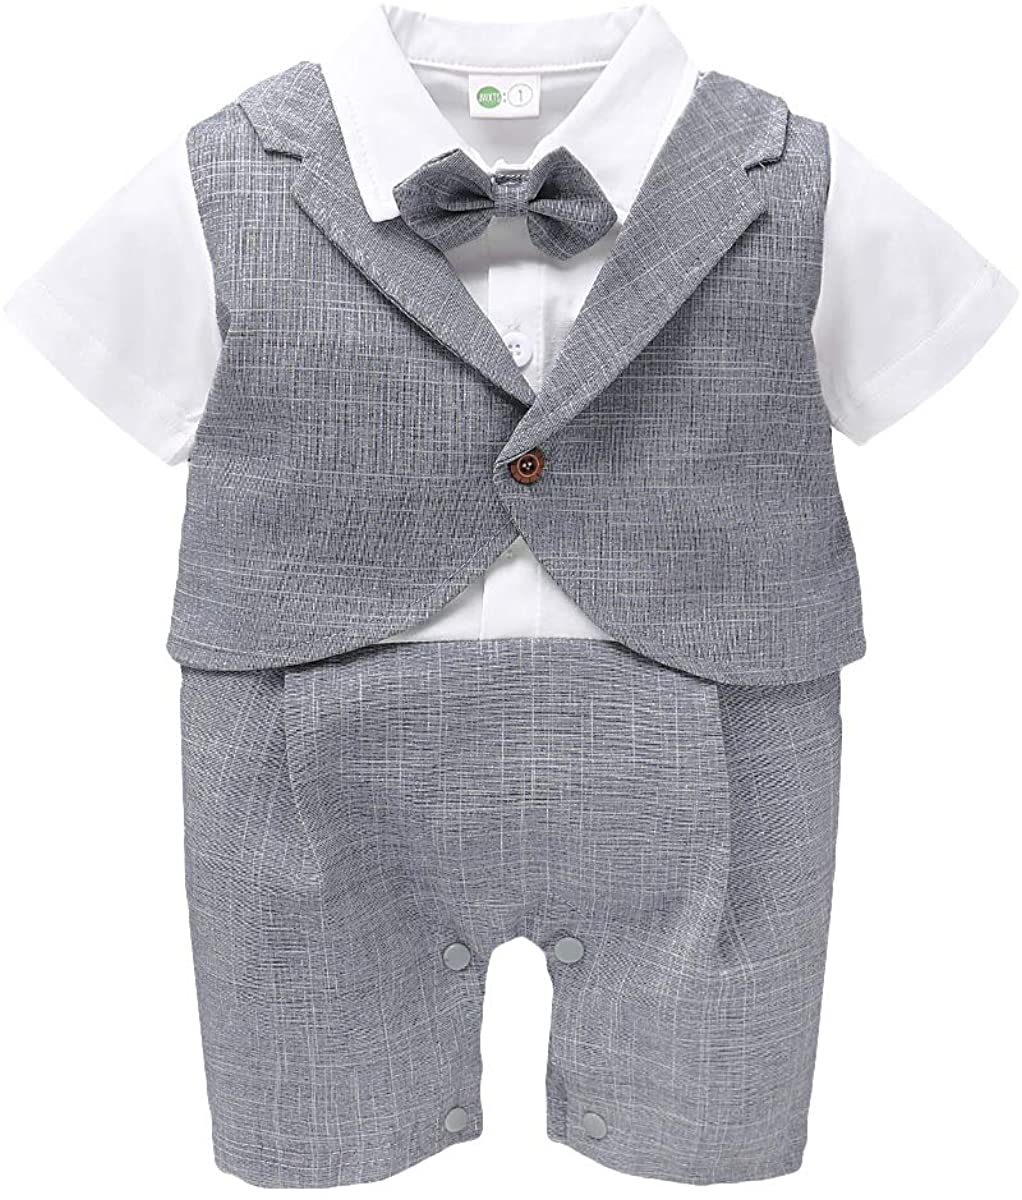 KNEYATTA Newborns Baby Boys Tuxedo Suits Formal Jumpsuit Gentleman Outfit One-Piece Romper Wedding Outfi